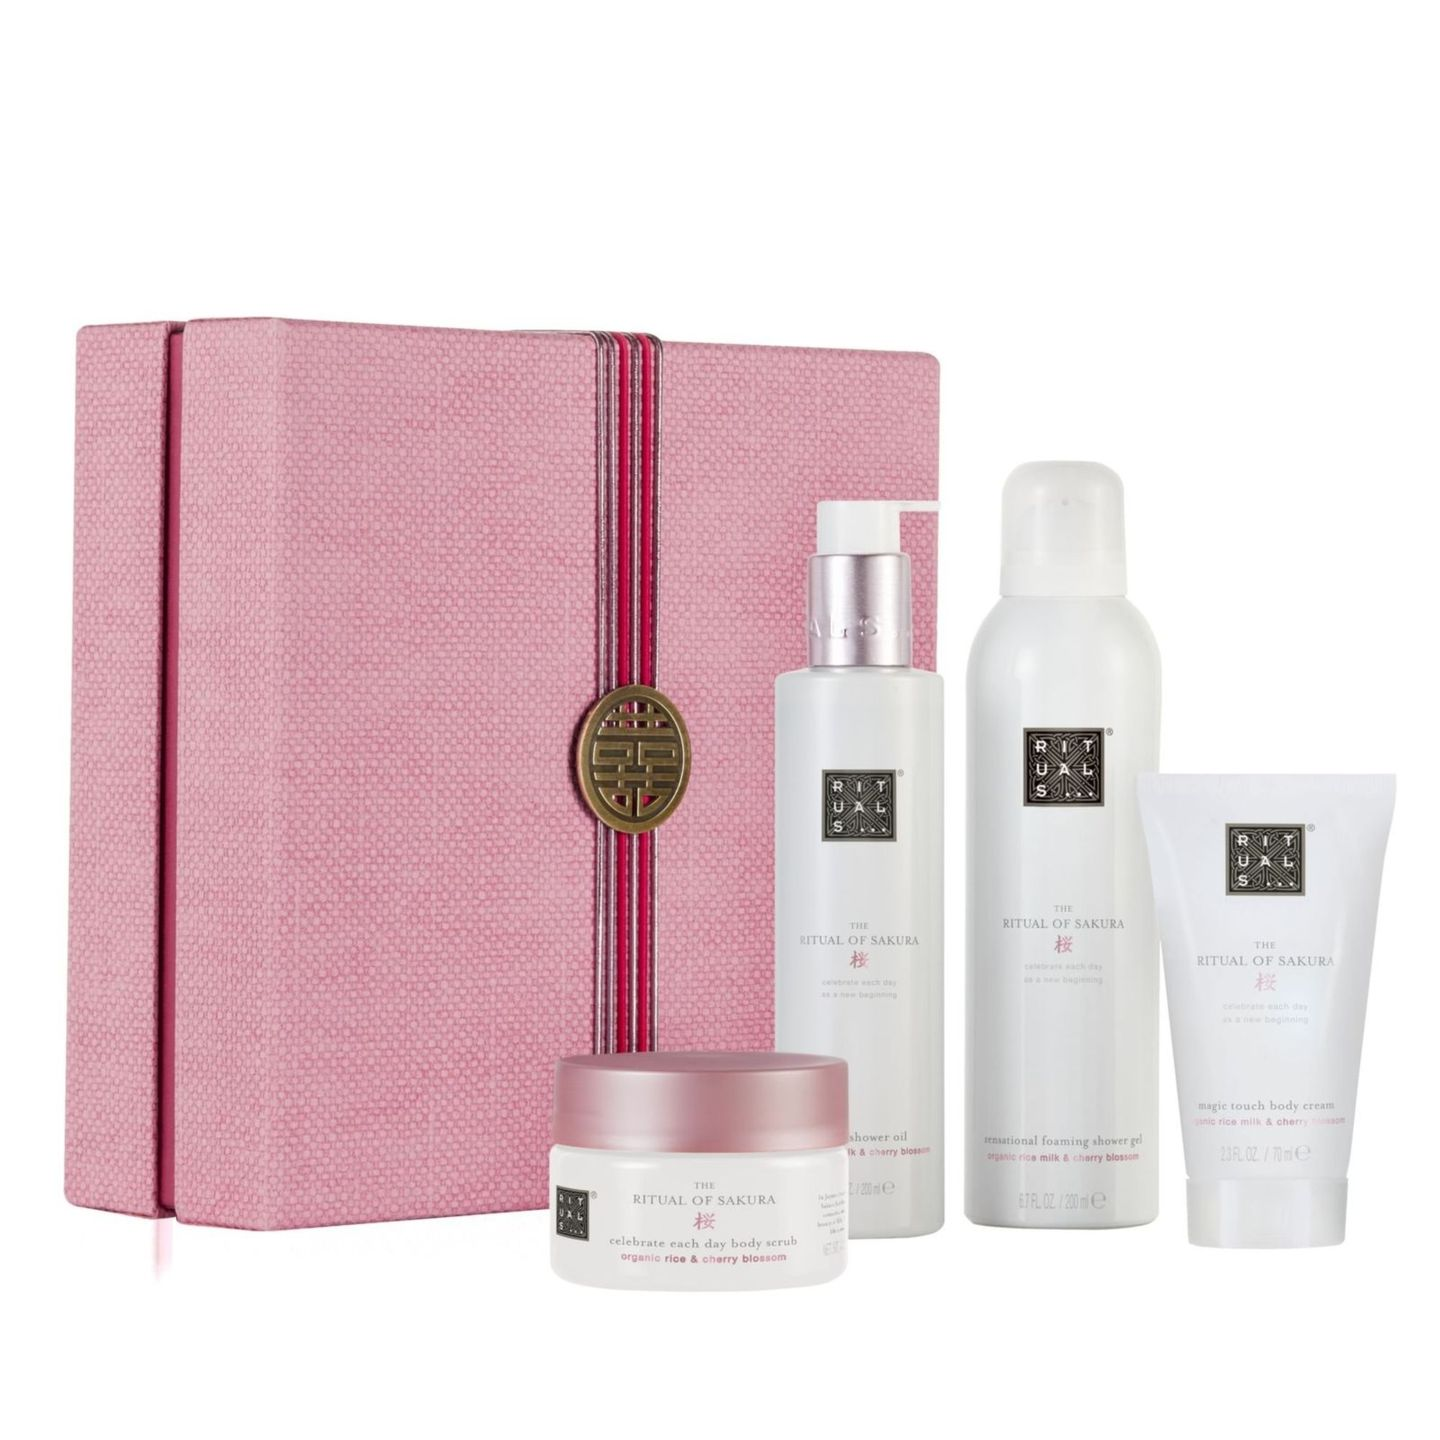 Rituals, The Ritual of Sakura – Relaxing Gift Set, Currently priced at £26.55